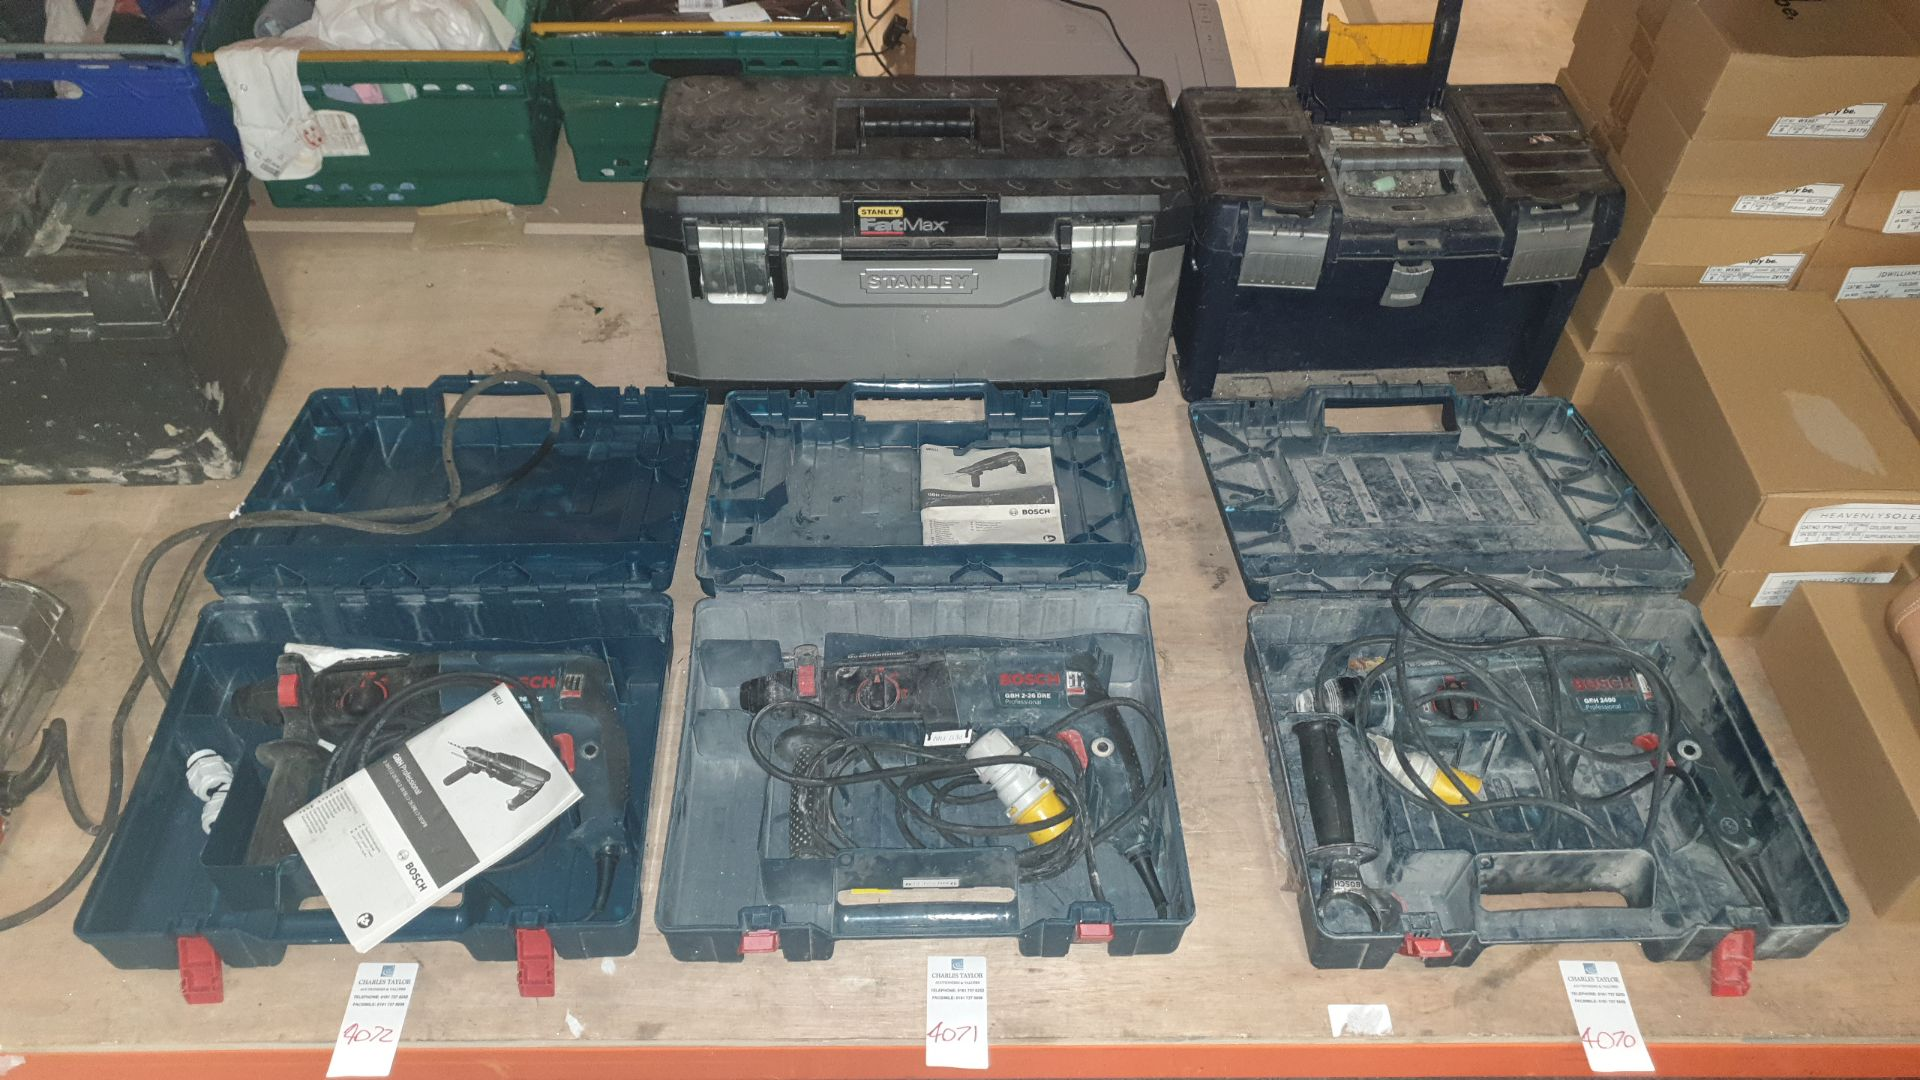 MIXED TOOL LOT CONTAINING BOSCH HAMMER DRILL (GBH 2-26 DRE PROFESSIONAL) ALSO INCLUDES STANLEY